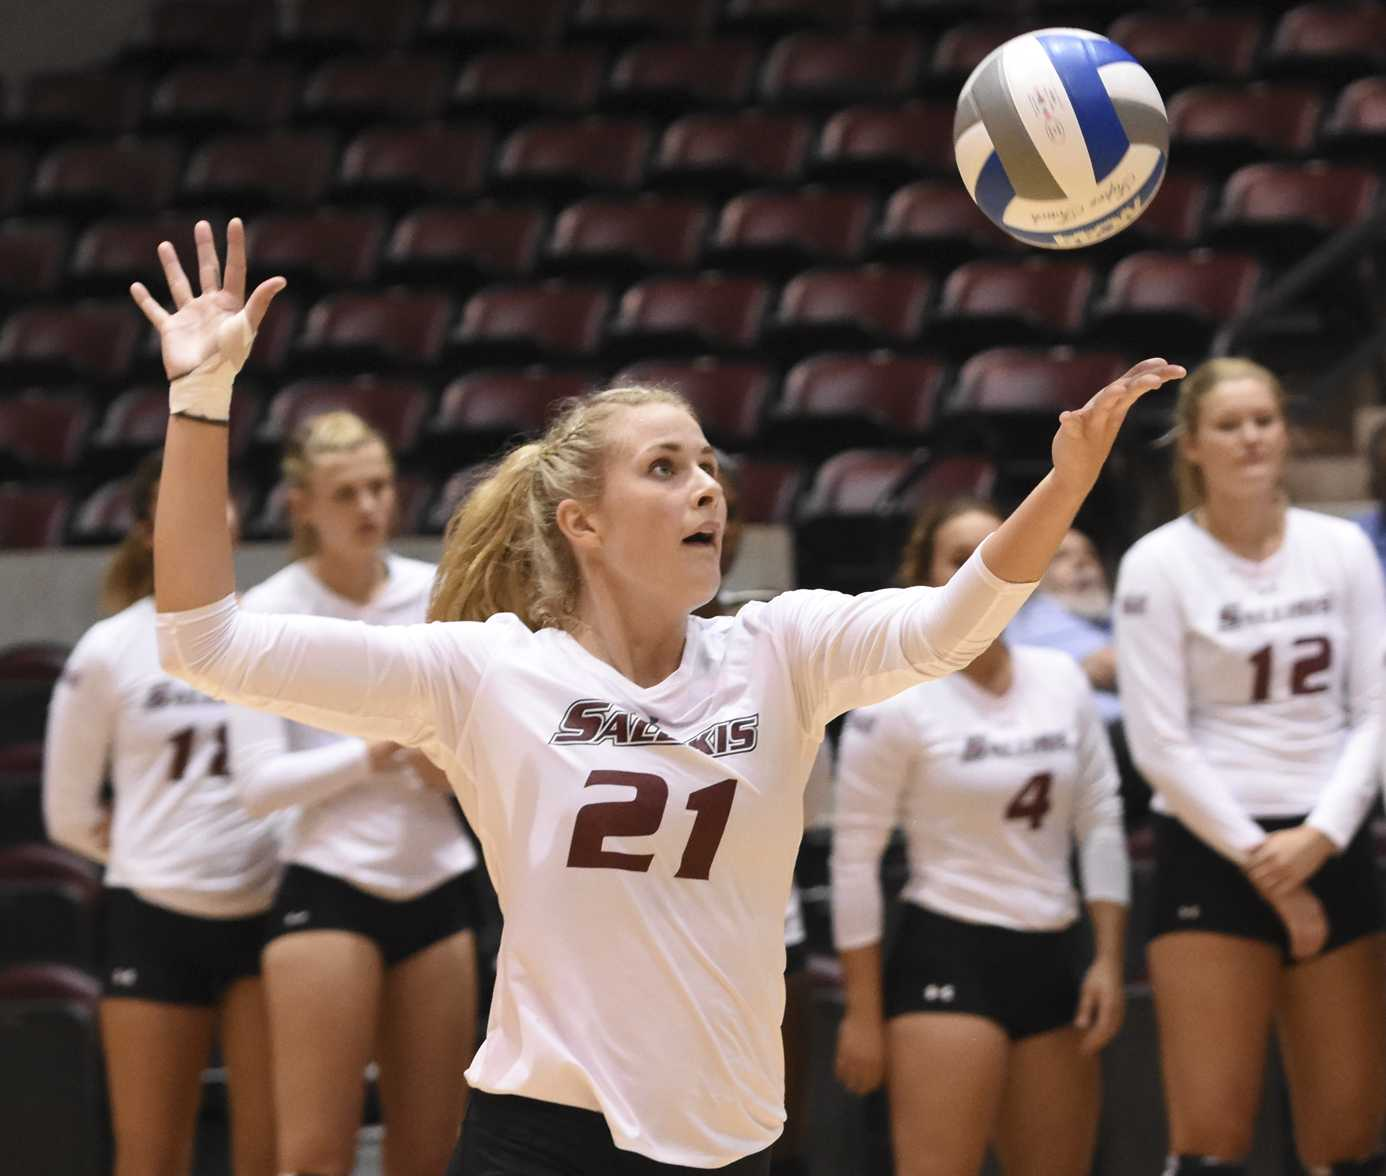 Junior middle hitter Alex Rosignol tosses up a serve Saturday, Sept. 3, 2016, during SIU's 3-1 loss to Northern Arizona at SIU Arena. (Sean Carley | @SCarleyDE)